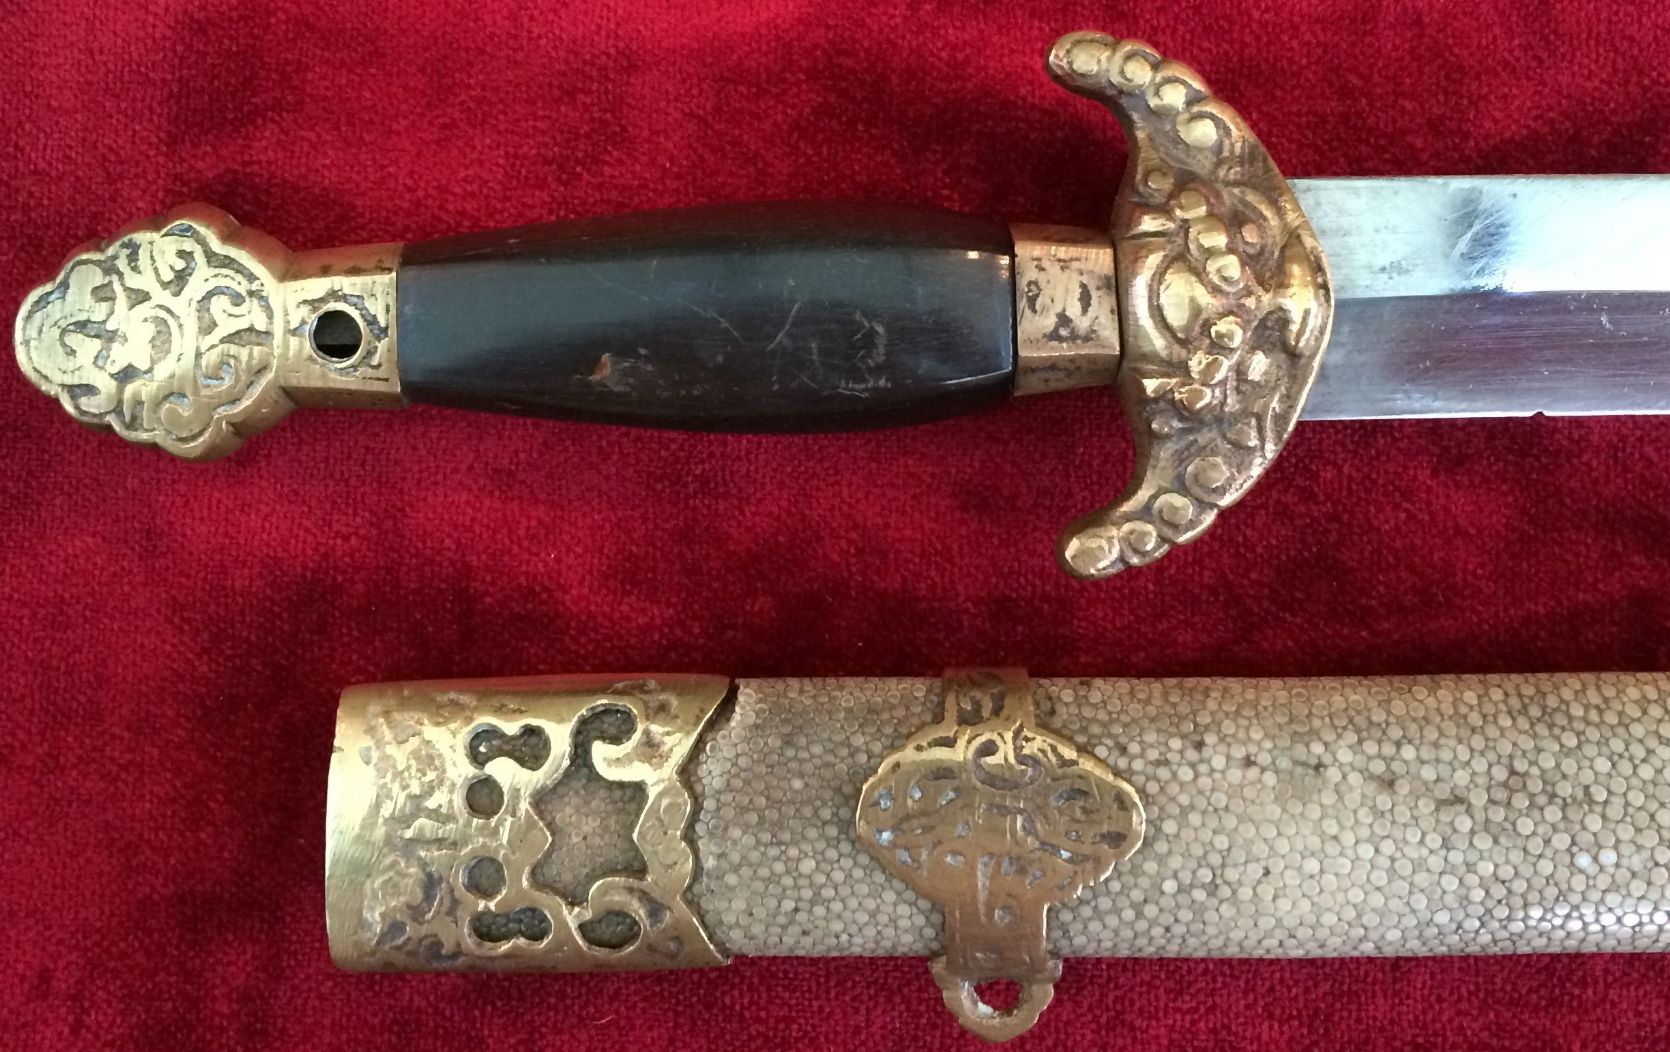 X X X SOLD X X X 19th century Chinese antique short sword